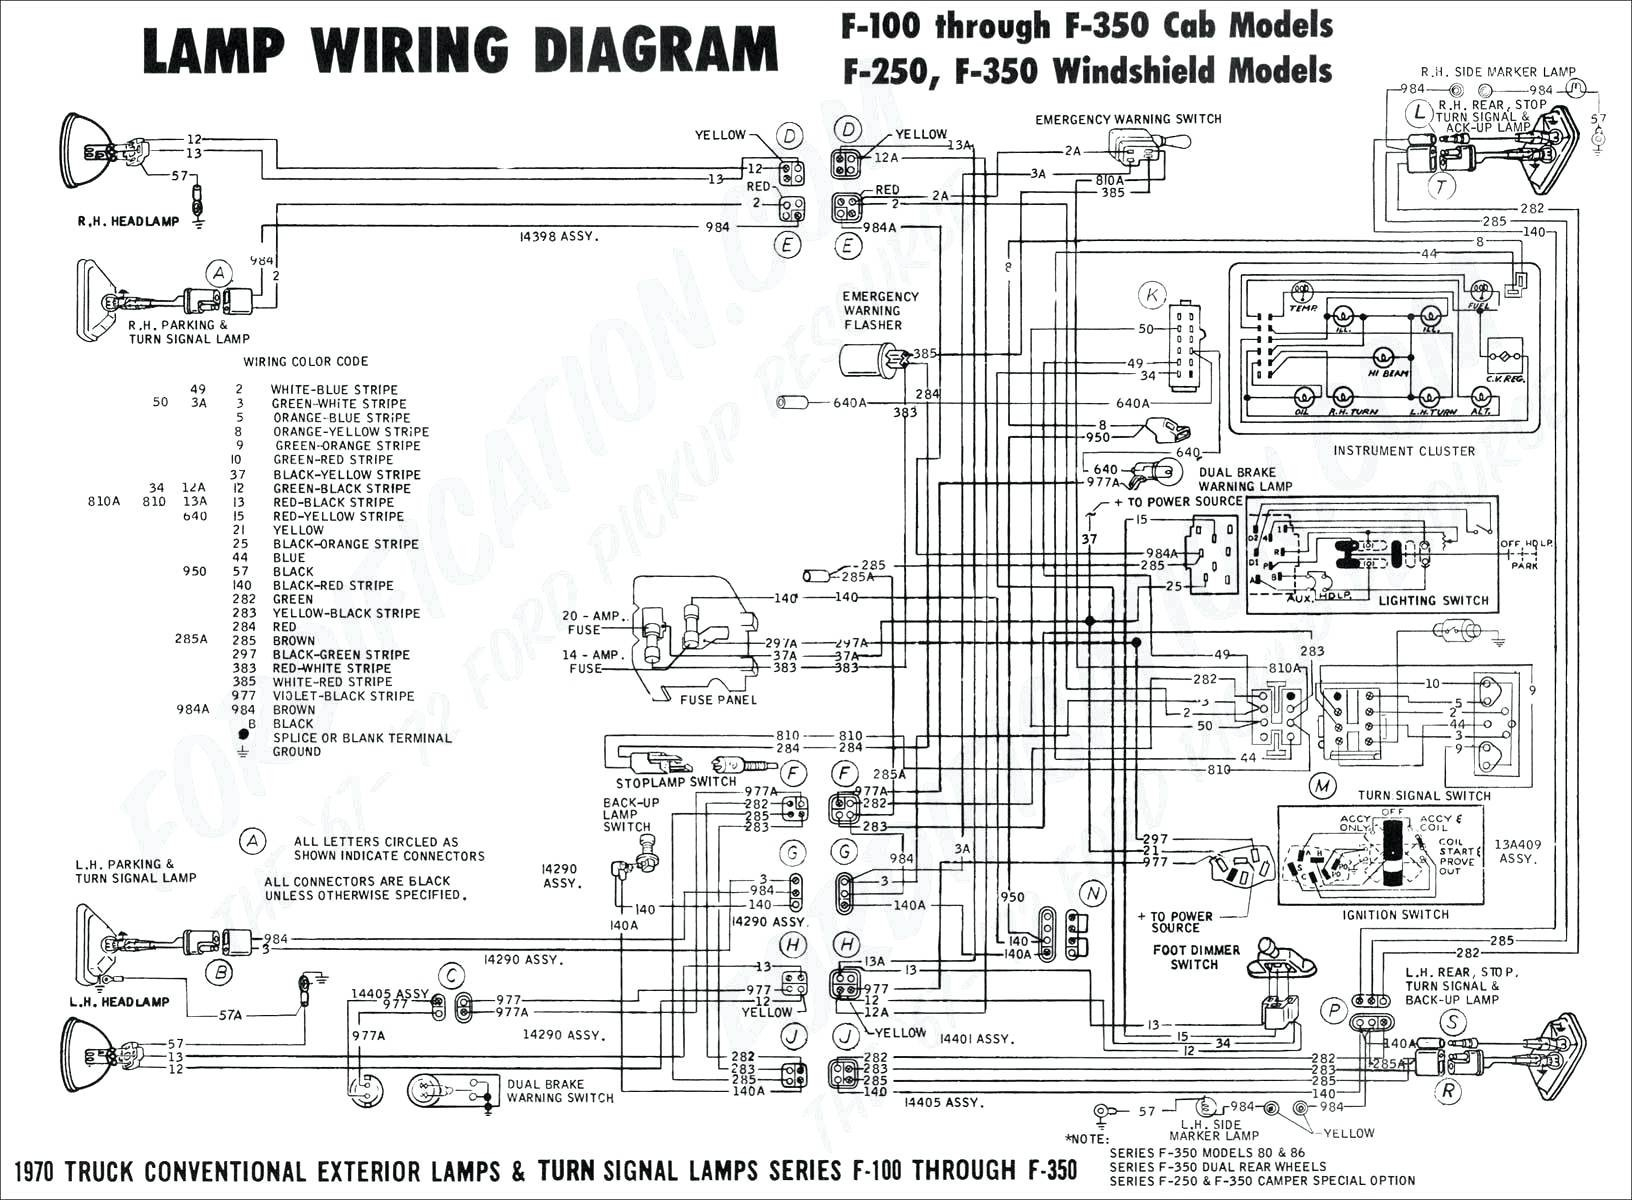 2015 chevy silverado wiring diagram Collection-Chevy Silverado Trailer Wiring Diagram 2005 Chevy Silverado Trailer Wiring Diagram ford Resize Gmc Ideas 6-f